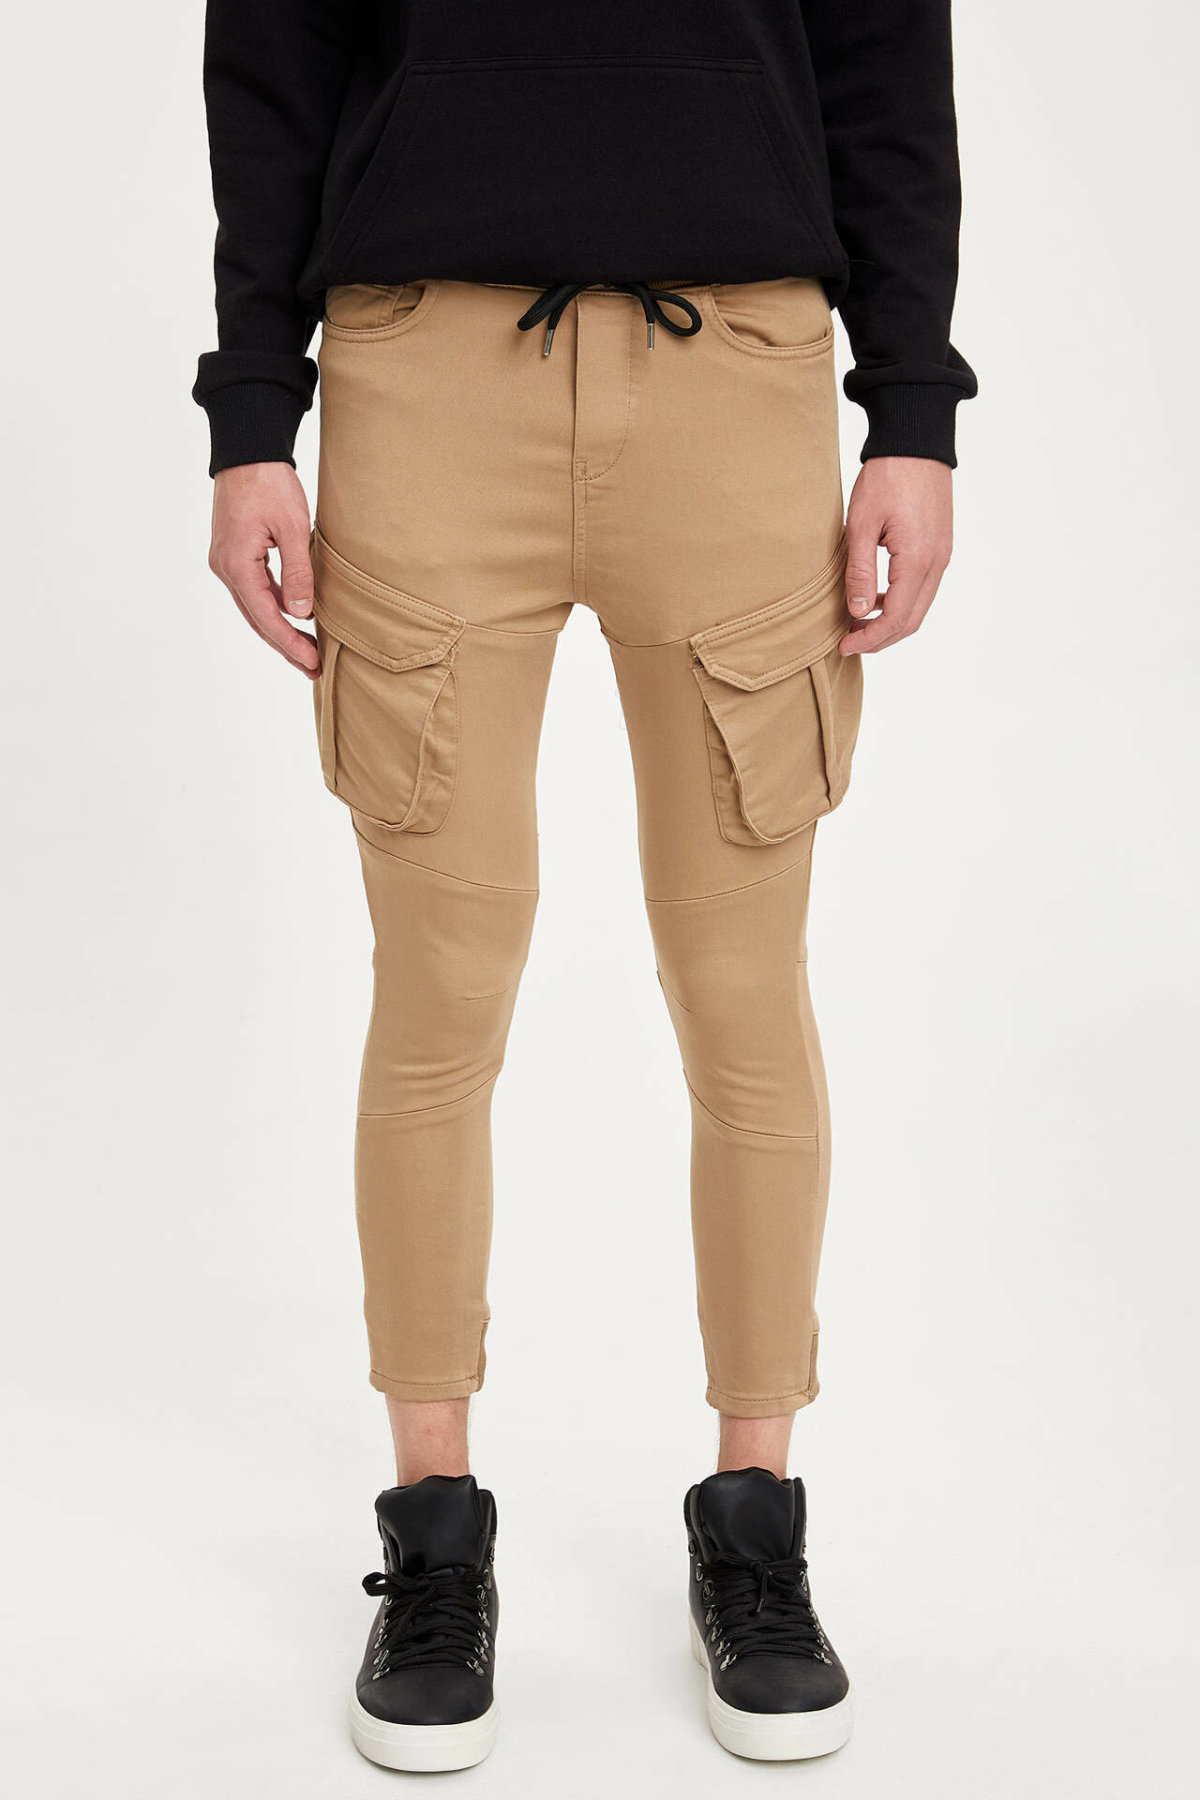 DeFacto Man Autumn Khaki Pencil Pants Men Fit Slim Ninth Pants Casual Bottom Trousers Male Mid-waist Long Pants-M5733AZ19AU